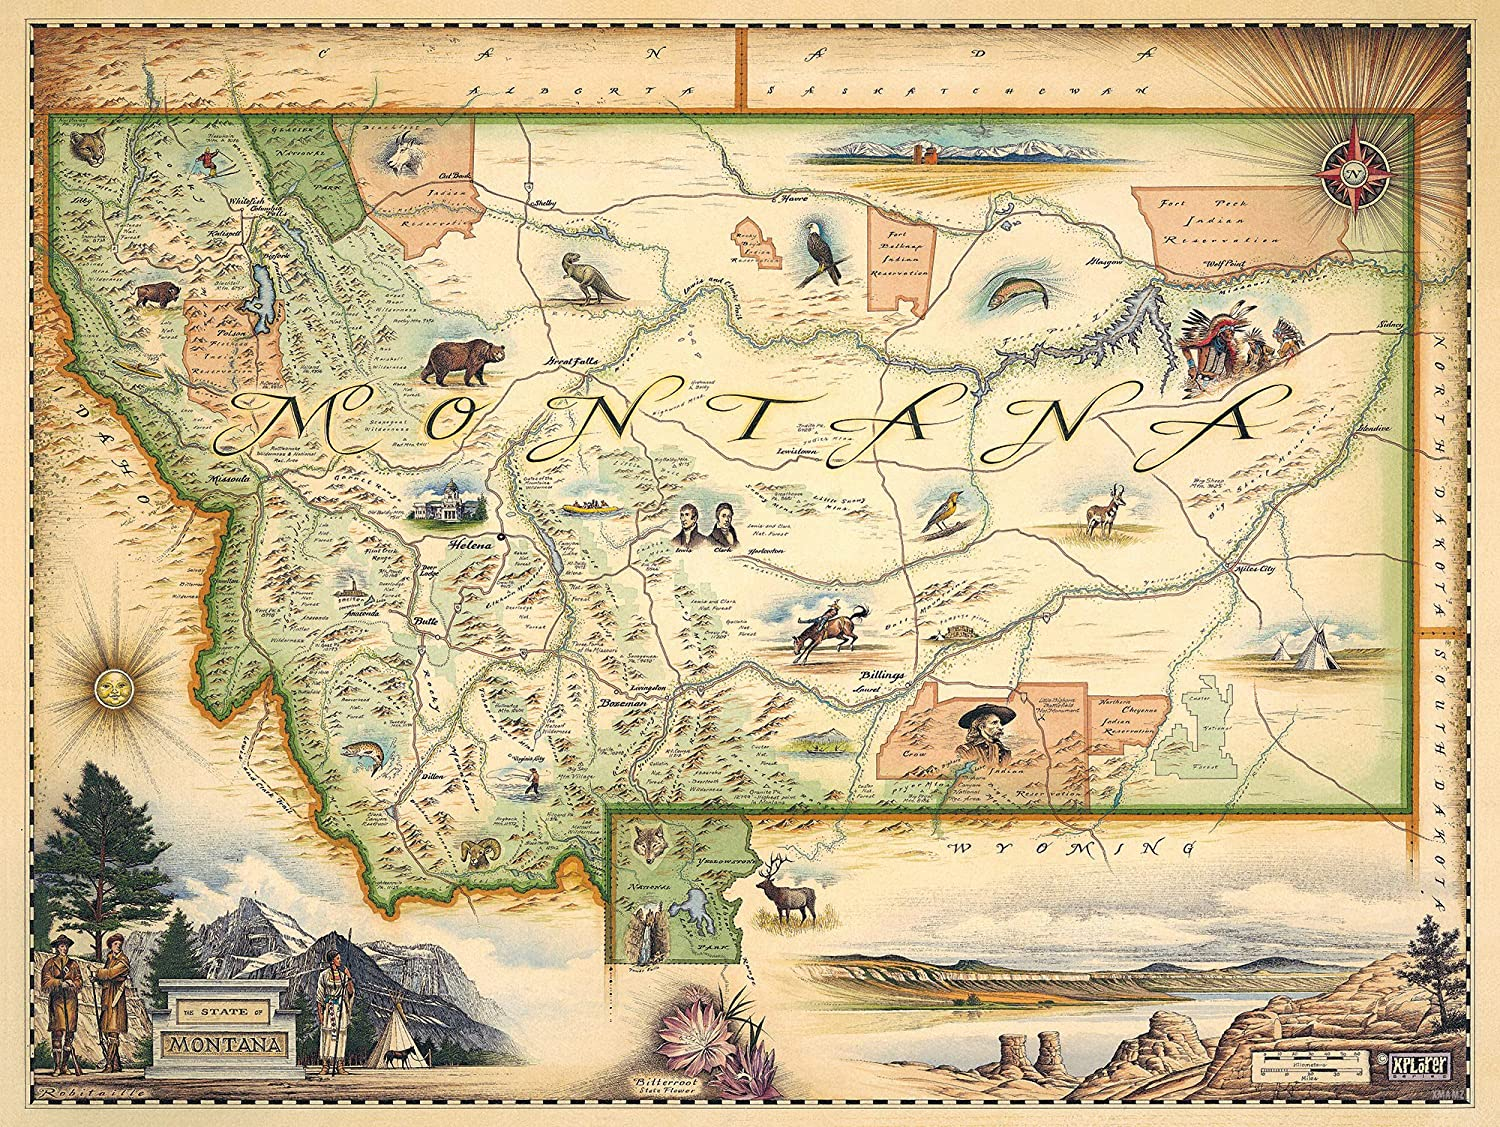 Montana State Map Wall Art Poster - Authentic Hand Drawn Maps in Old World,  Antique Style - Art Deco - Lithographic Print